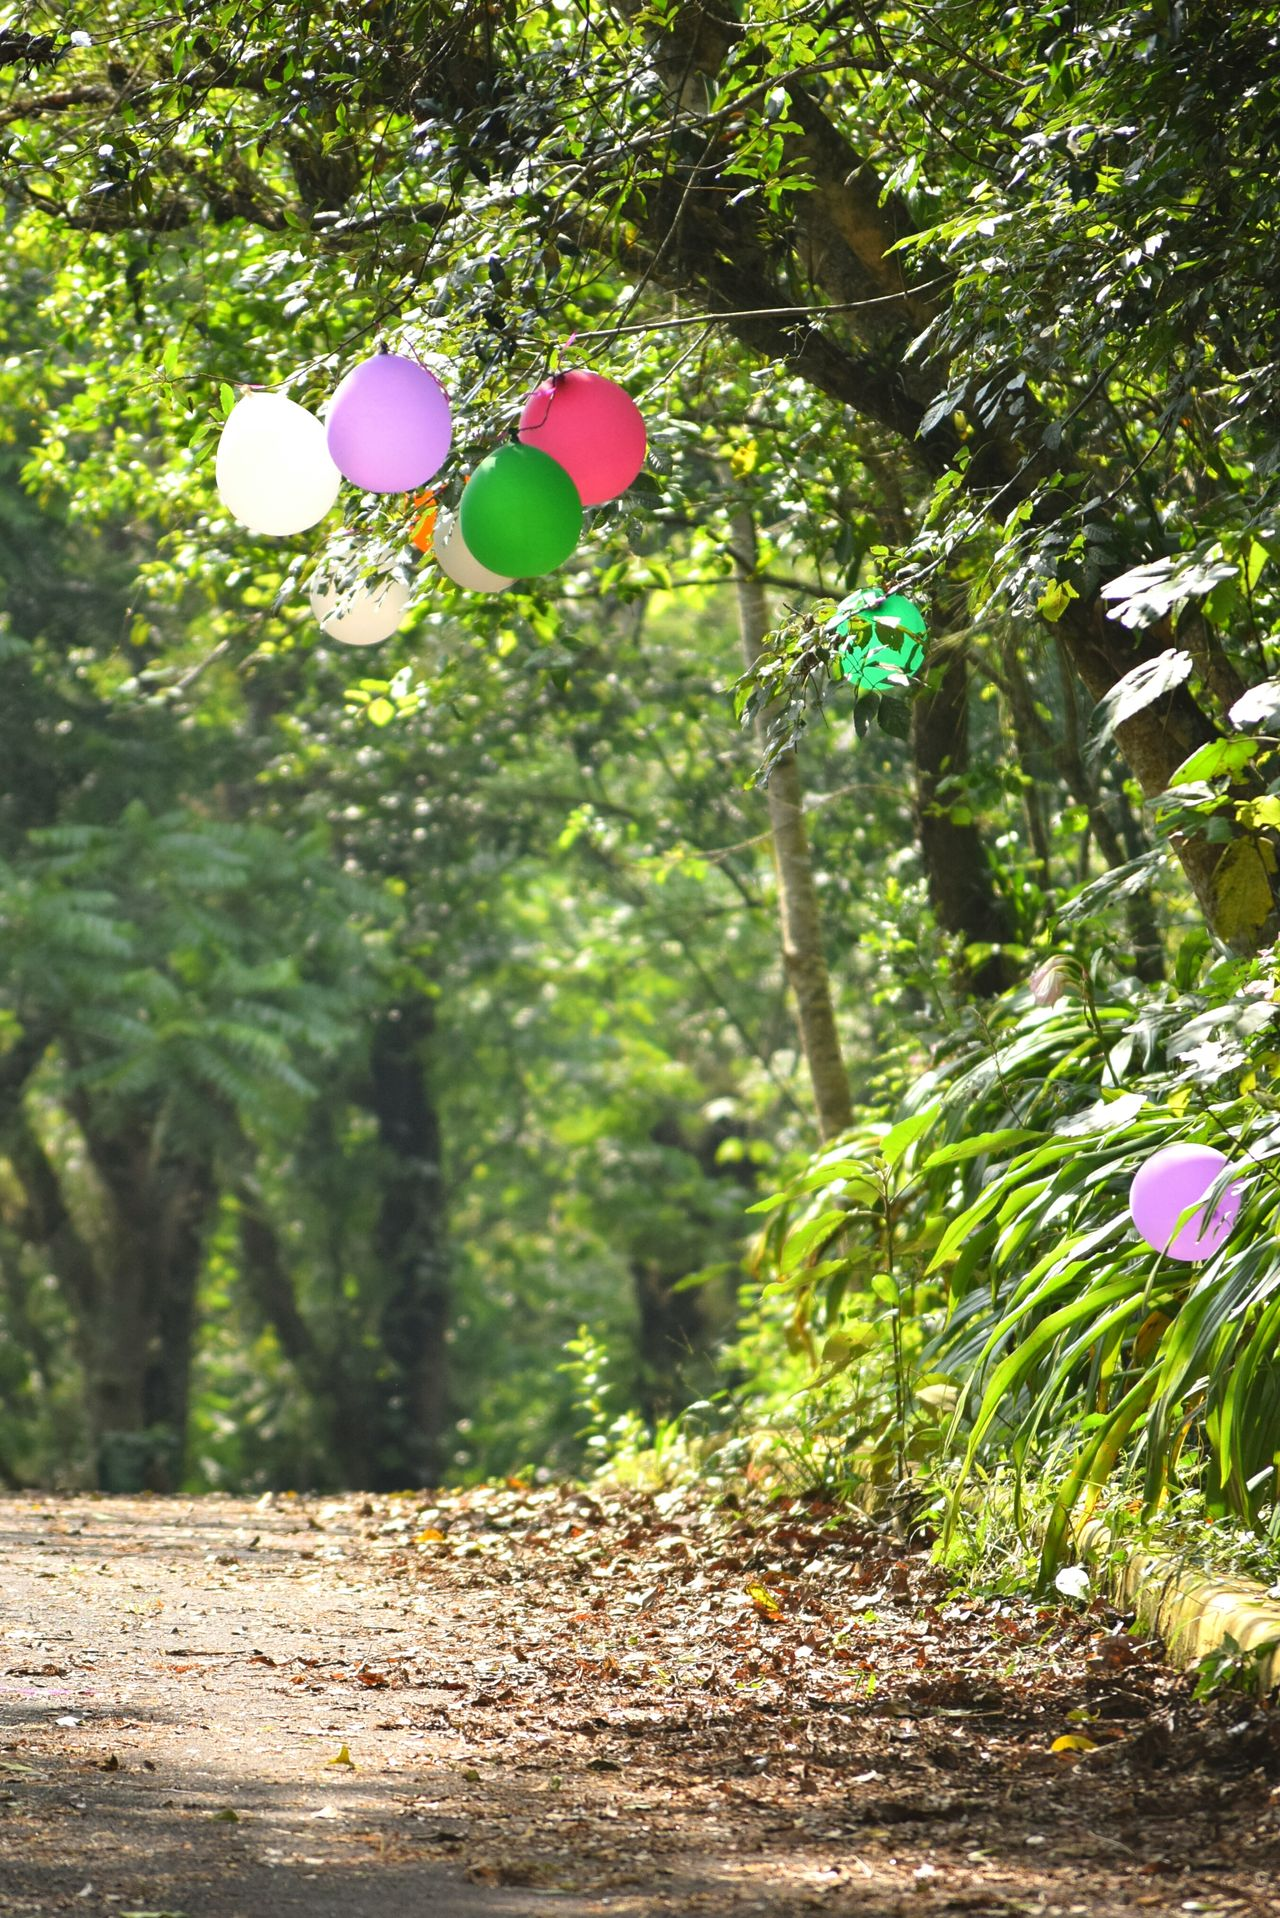 Tree Forest Outdoors No People Green Color Nature Day Sunny Day Tree Travel Nature Balloons Light And Shadow Way Path Road Urban Nature Park Sunshine Natural Light Leaf Leafs Life In Colors Freedom The City Light